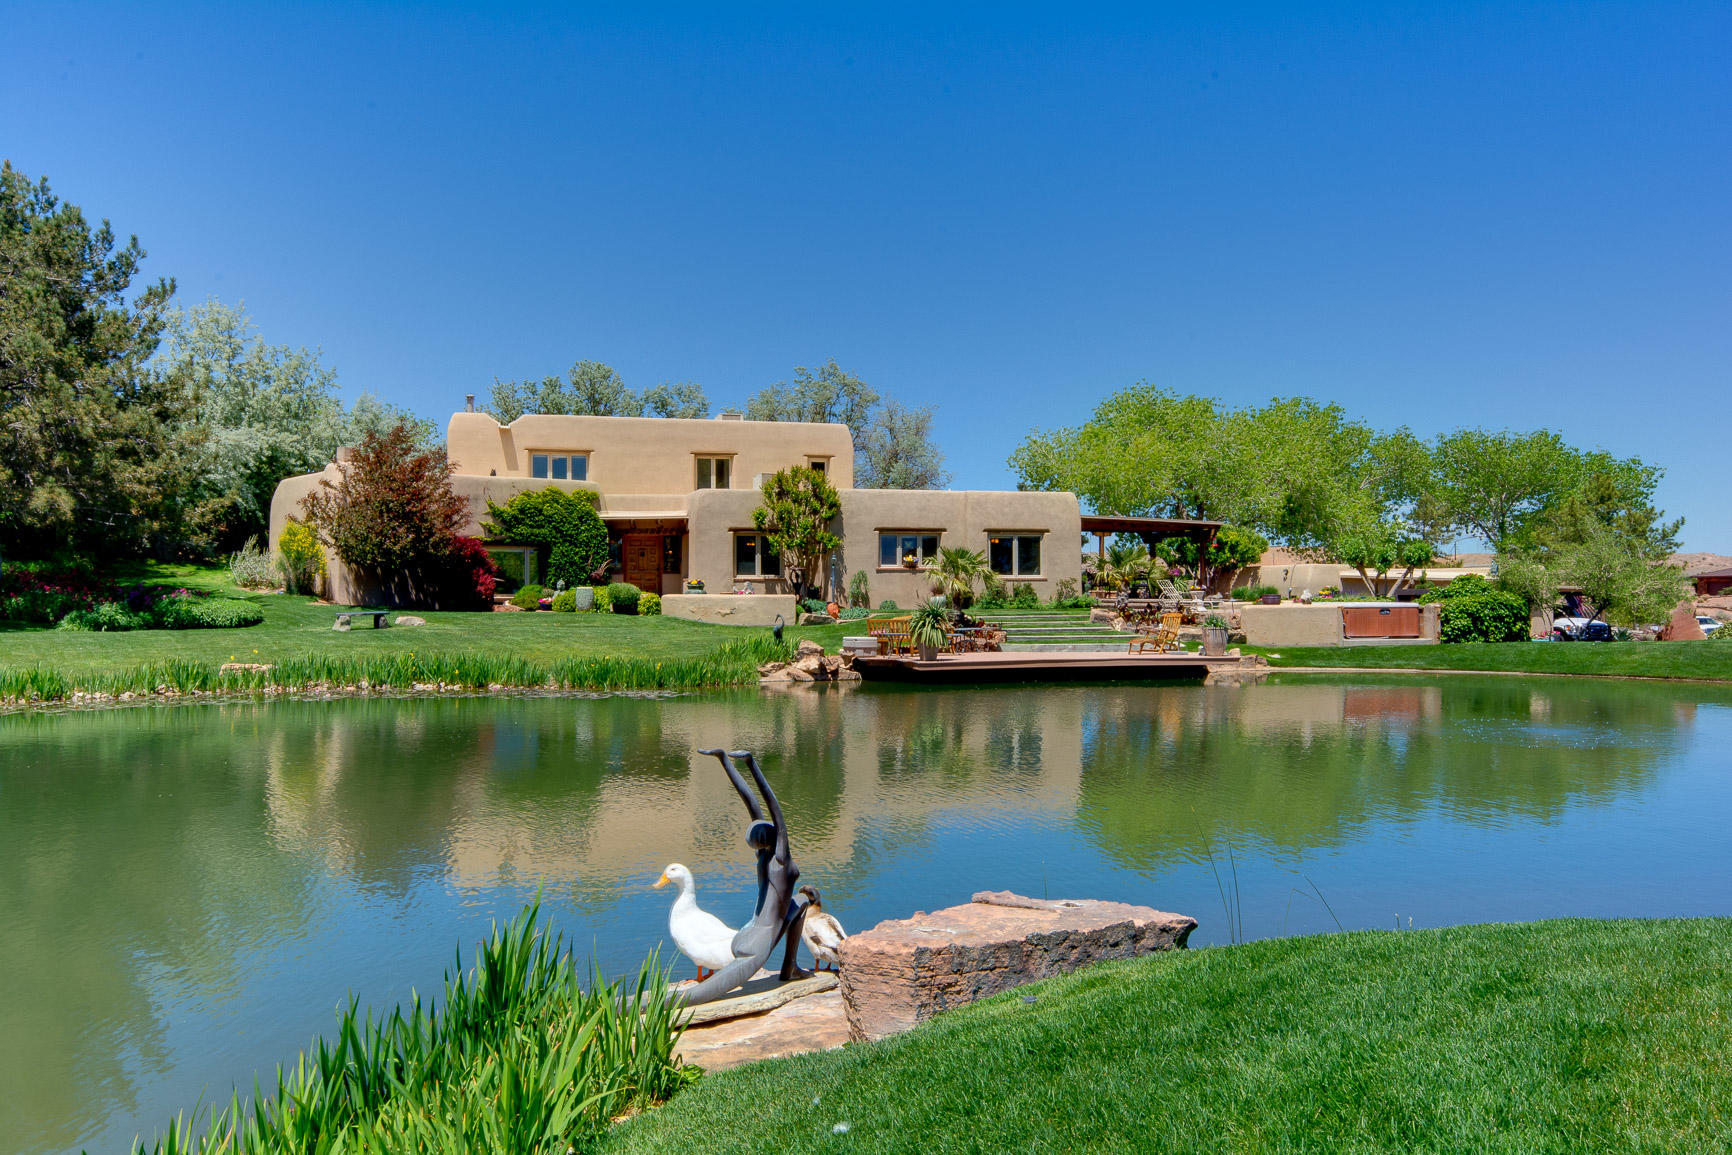 Extraordinary Nat Kaplan Adobe home nestled on a master designed private oasis in the desert w/impeccable craftsmanship, understated elegance & timeless finishes/amenities; Spanish Boveda entry, T&G beamed ceilings, sandstone floors, 2 fireplaces, radiant heat, outdoor kitchen, fire pit, hot tub & studio. Country lifestyle on a secluded 13.3 acres (4 parcels/city water for house) opulent grounds & breathtaking mountain views; a canopy of gorgeous cottonwoods, grassy hills, 80 tree orchard, gardens, expansive pond & waterfall, go swimming or fishing, it's an ecosystem w/bass, bluegill, bull frogs, baby fish nursery cove, ducks, water lilies & energized by windmills that constantly refresh the pond from the well w/pre-1907 water rights! Visualizing a vineyard? This could be your Dream Home!